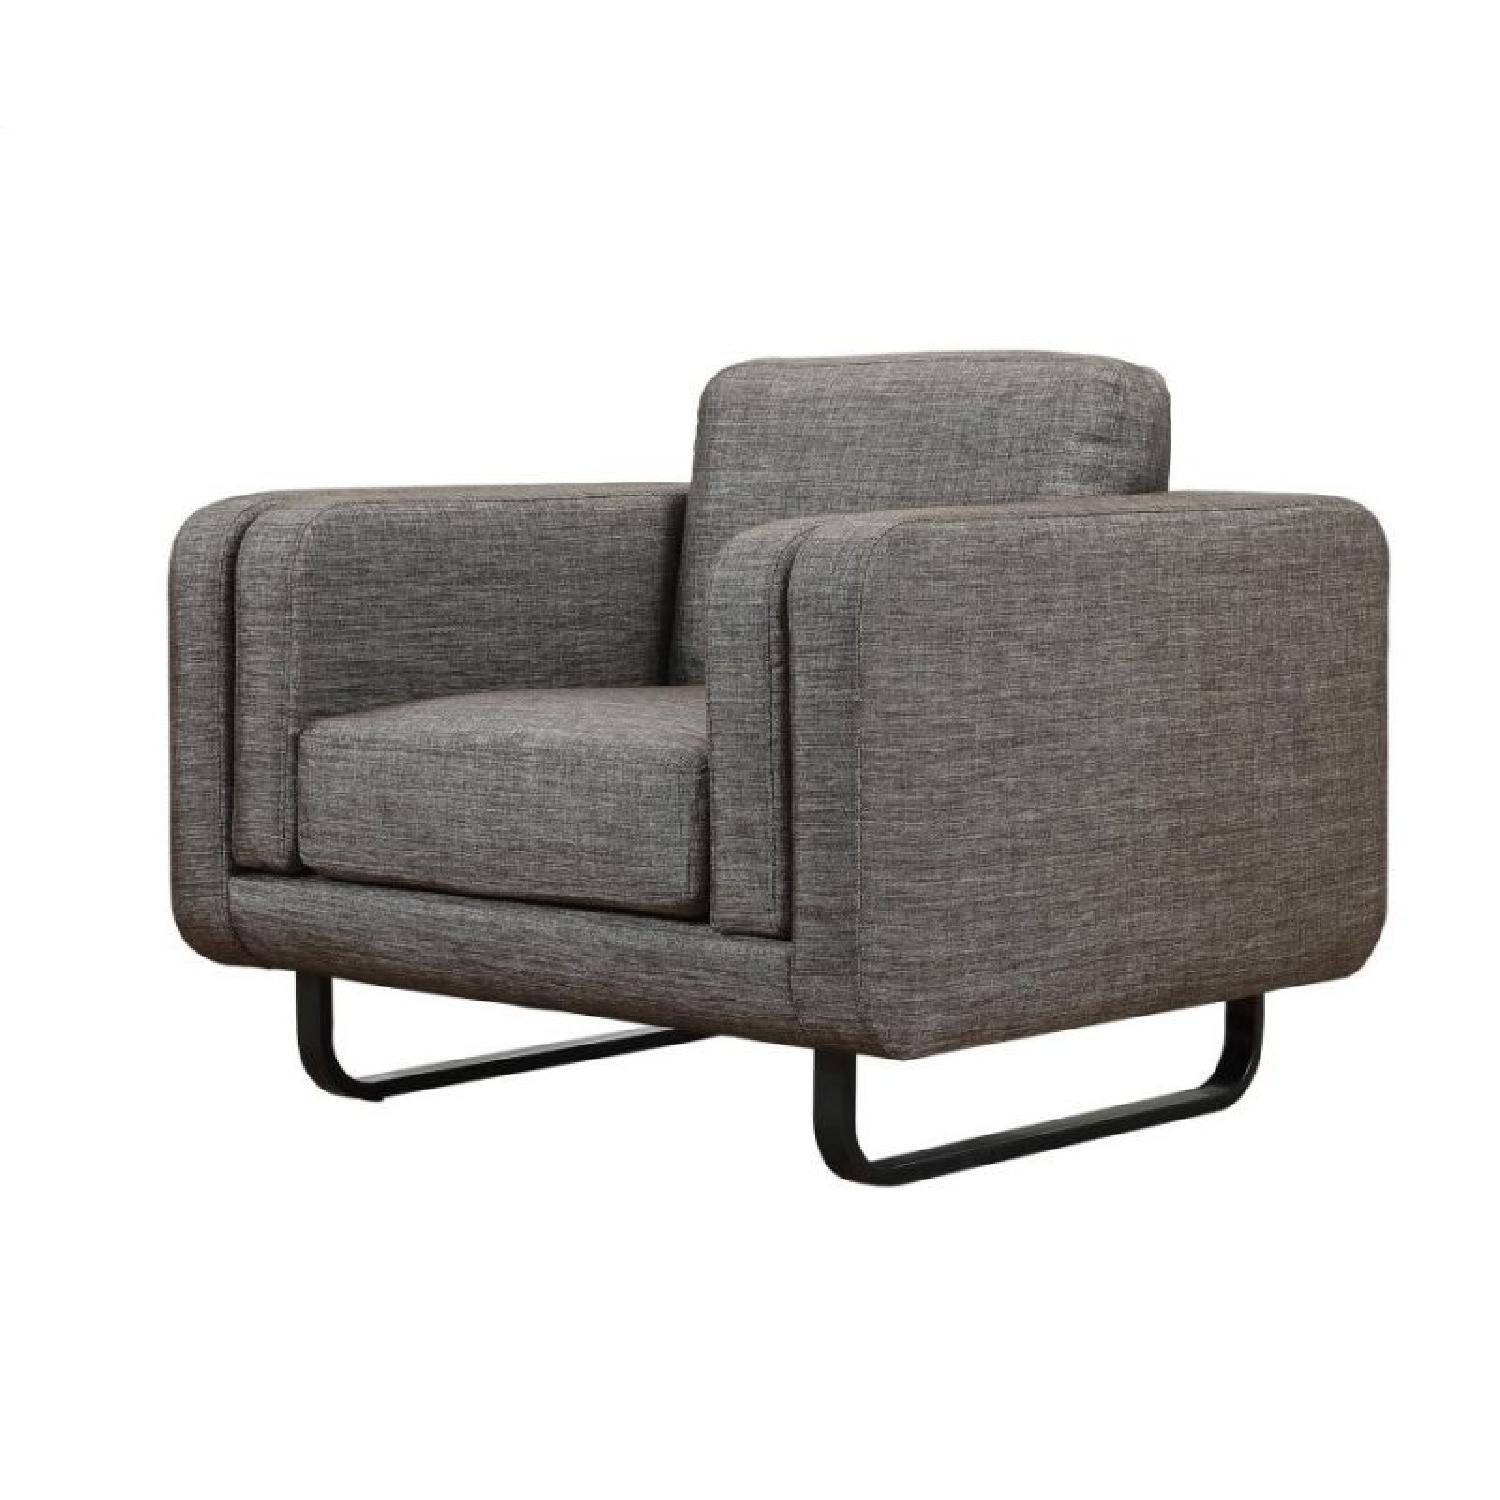 Contemporary Accent Chair in Dark Brown Woven Fabric